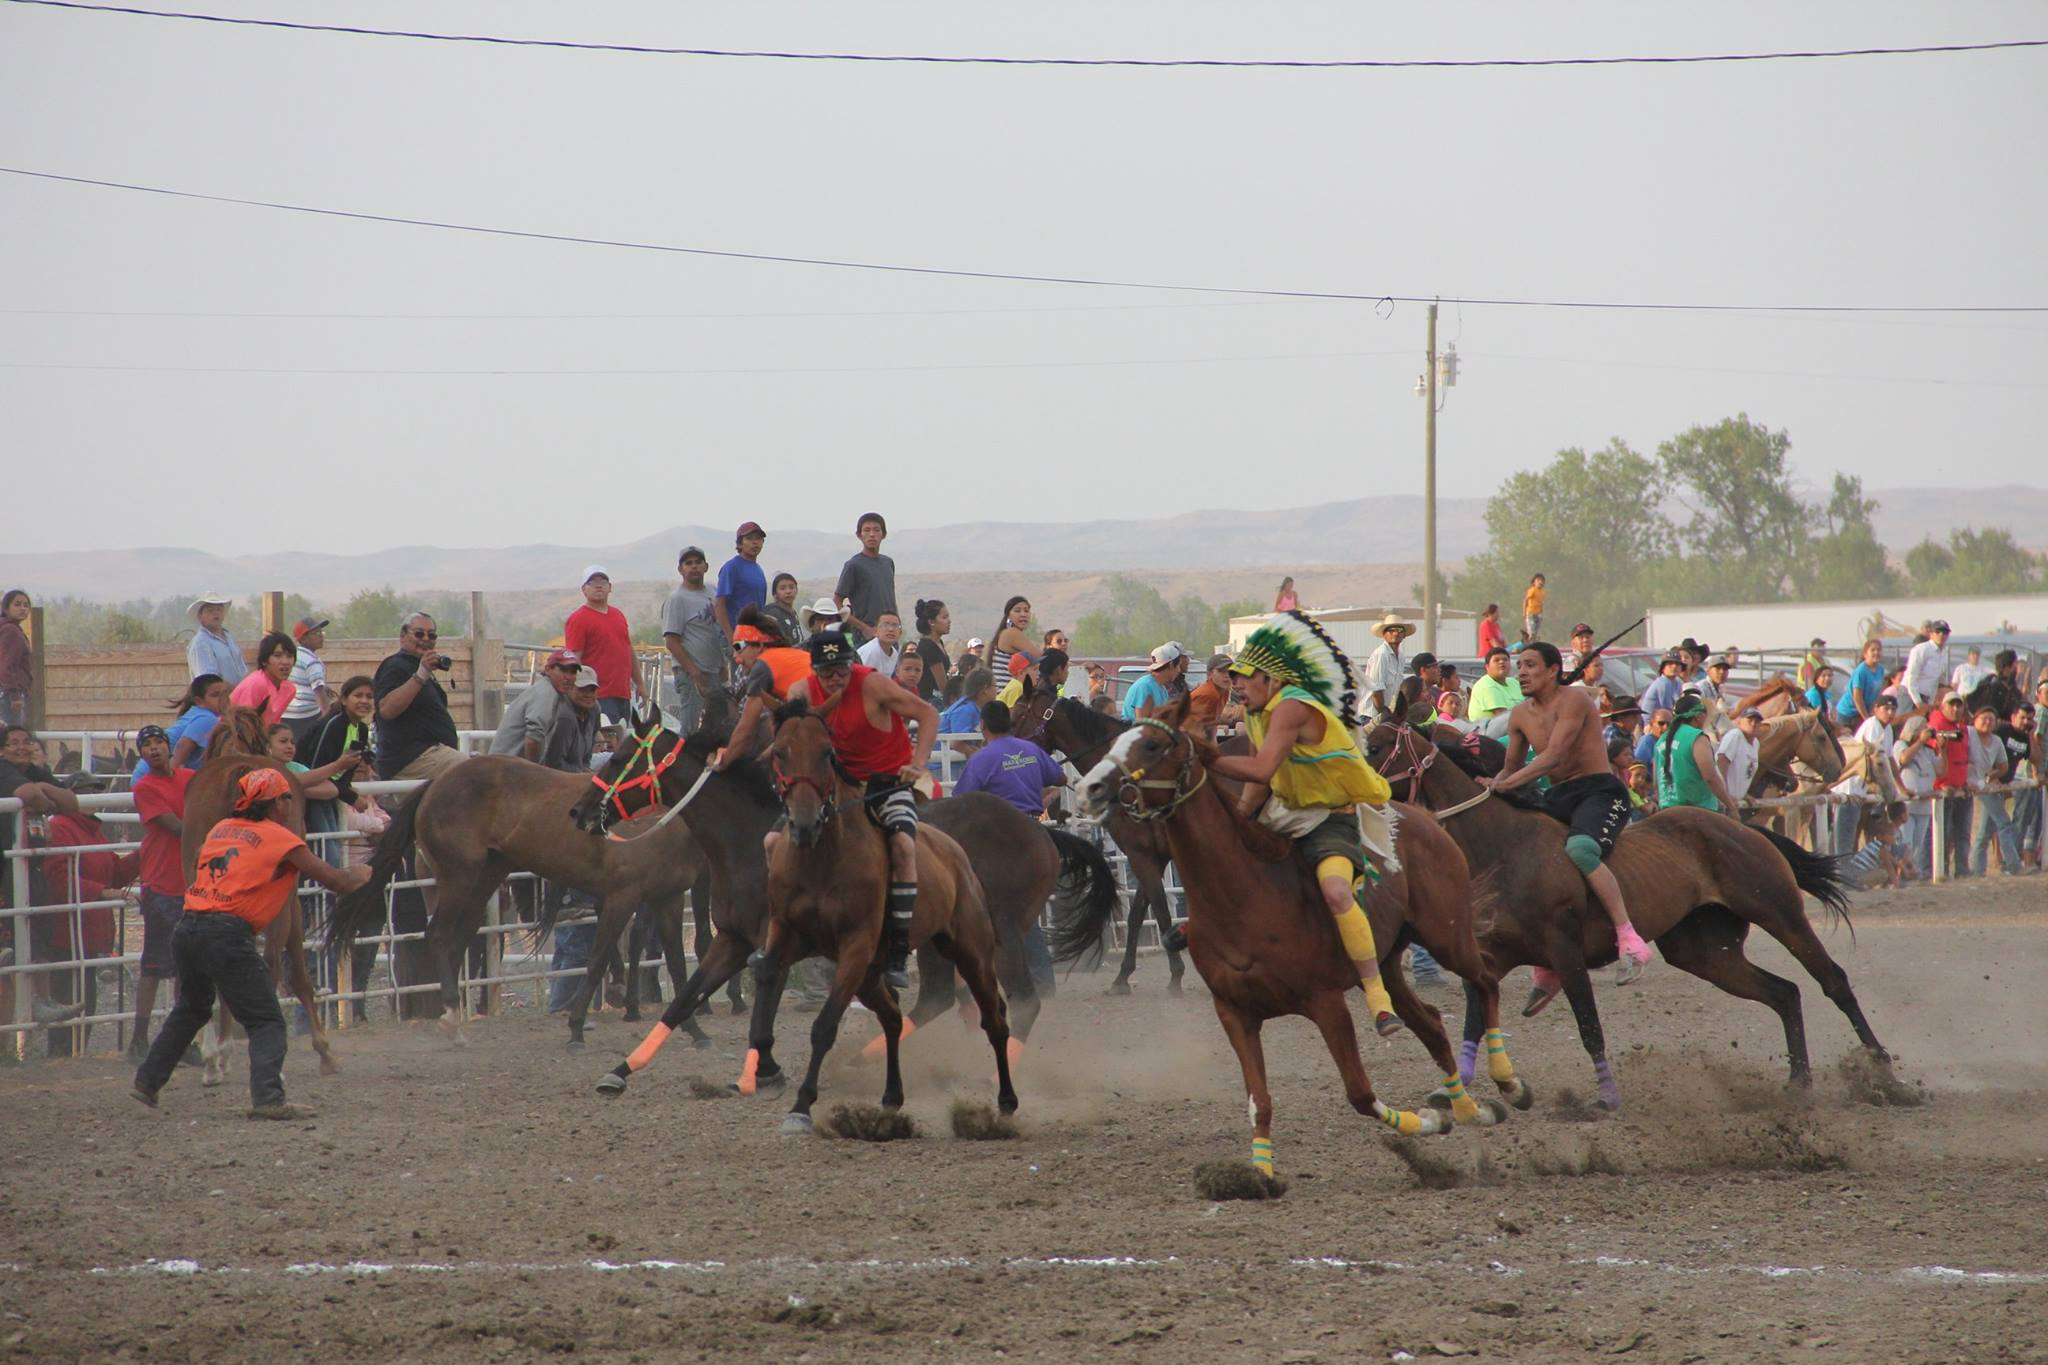 Lakota Country Times: Indian relay group announces event at new venue